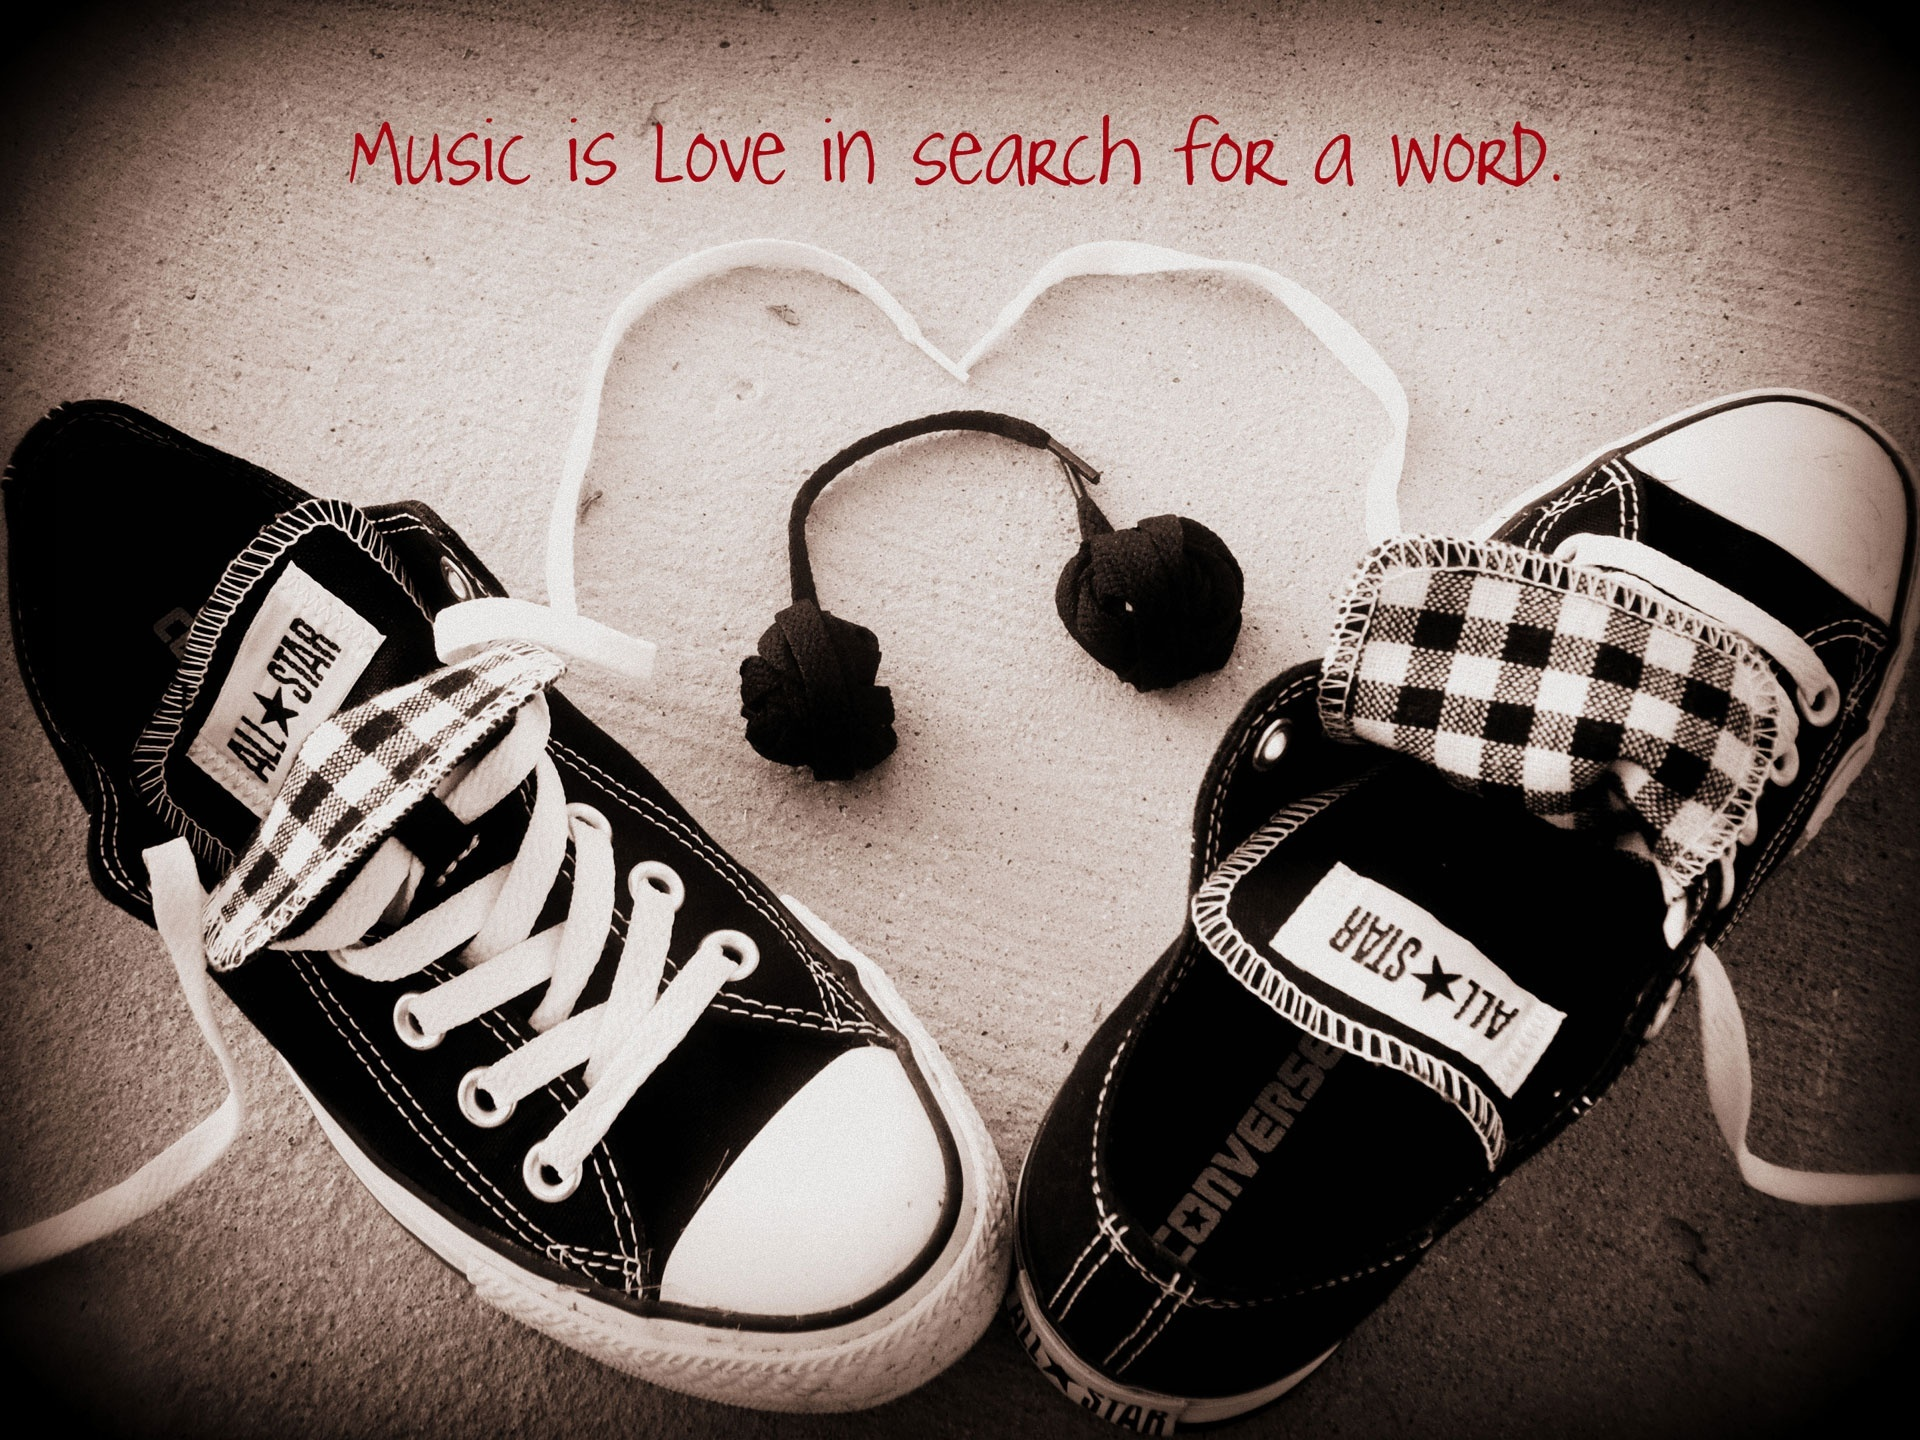 Music Images Music Saves My Soul Hd Wallpaper And Background Photos